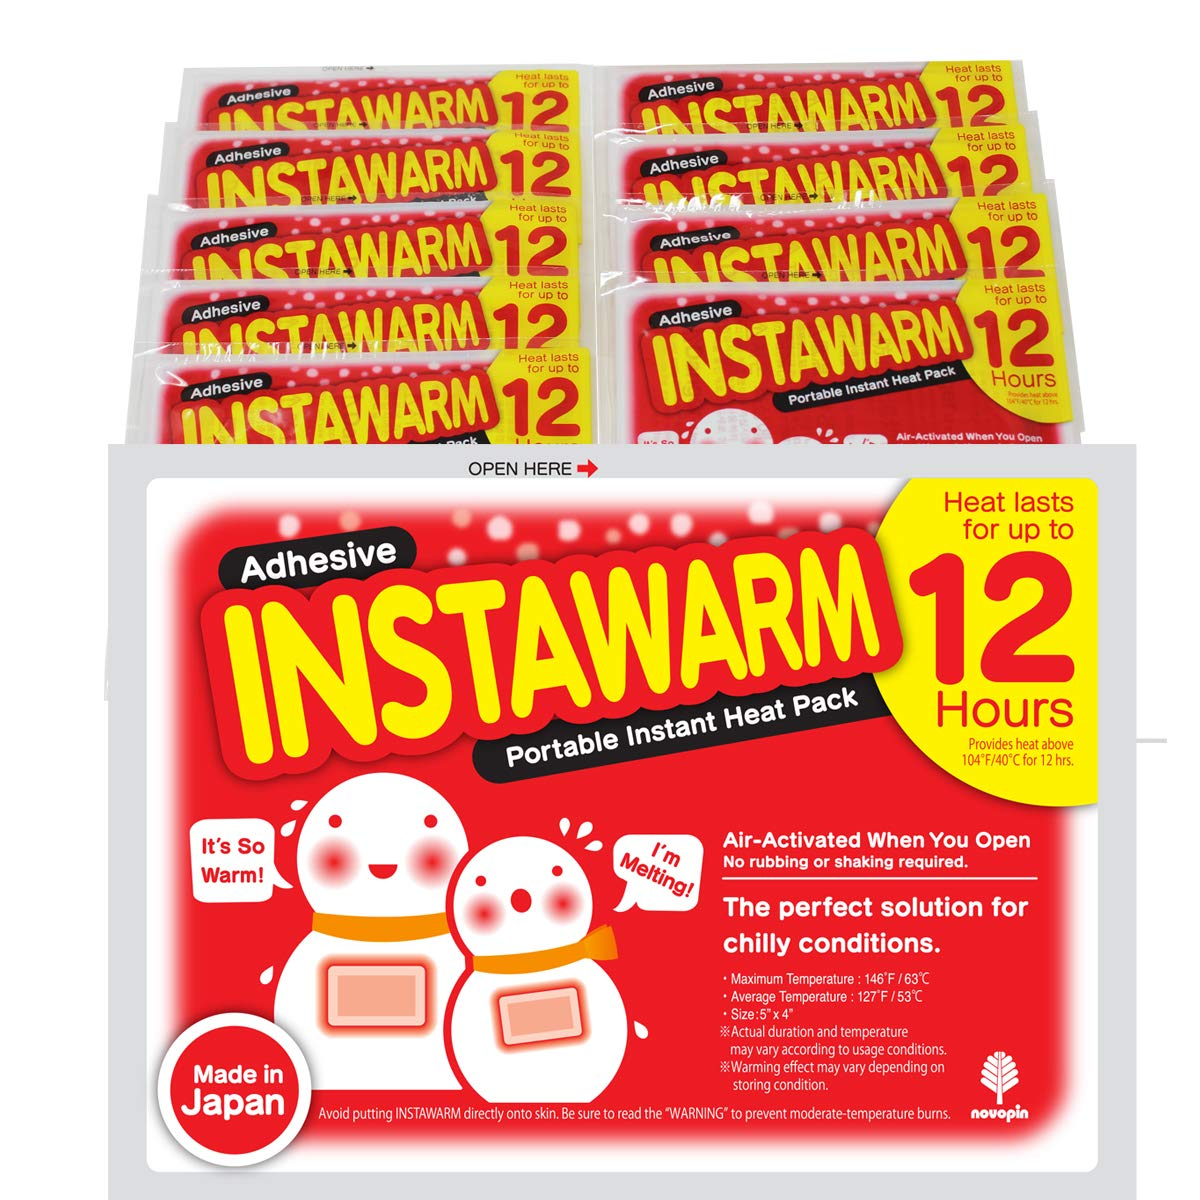 Kokubo Adhesive Hand Body Warmers Instawarm Portable Instant Heat Pack 12 Hours Value Pack Made in Japan (10pcs x 1pk (10ct)) by Kokubo